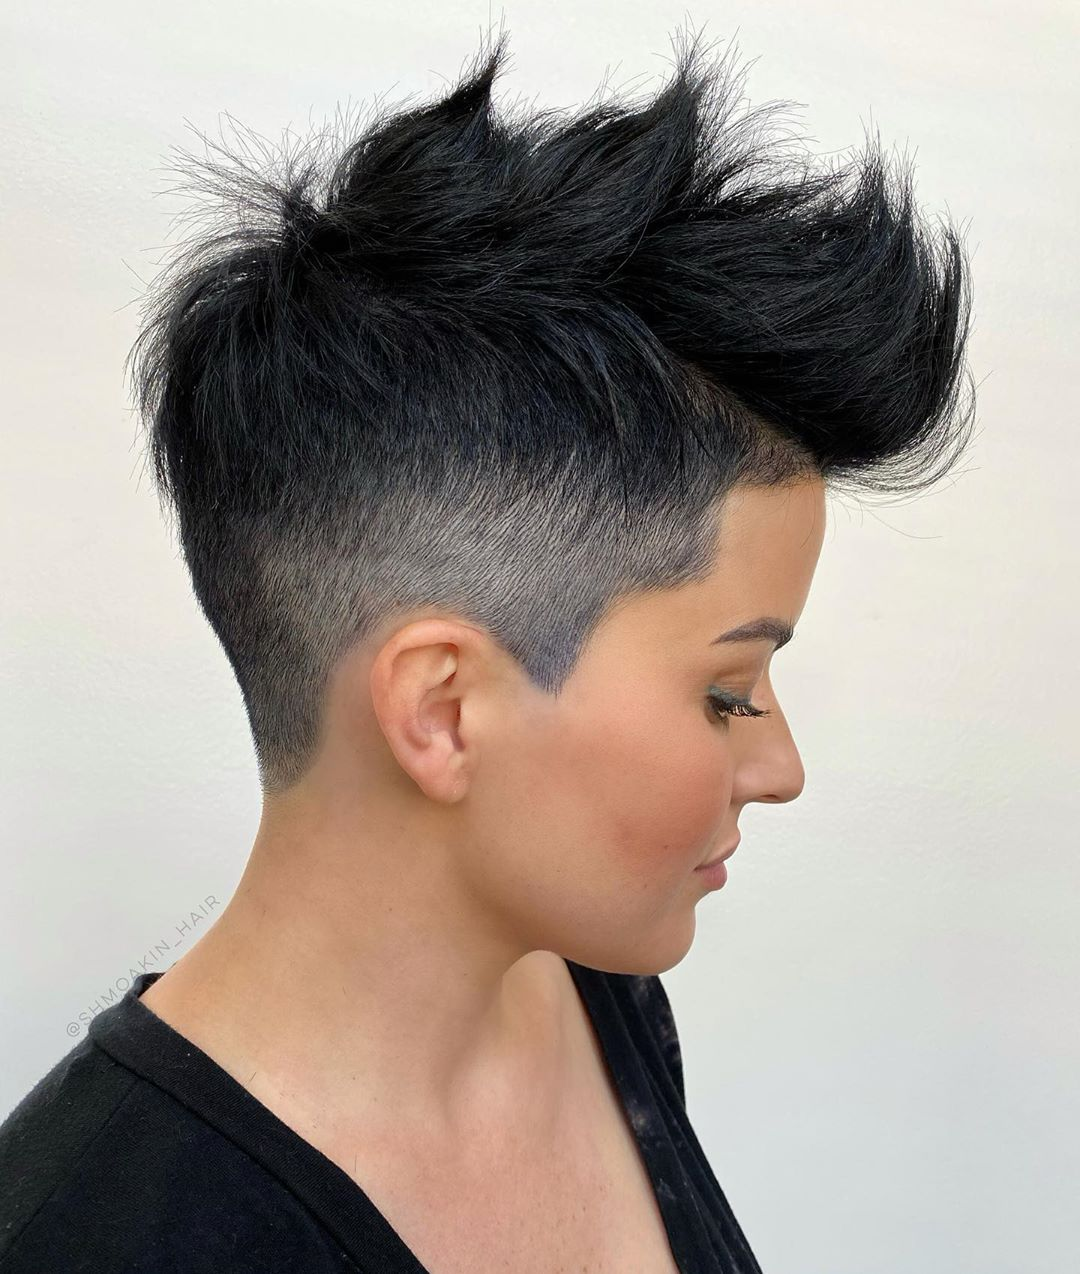 Undercut Pixie with Pompadour Bangs